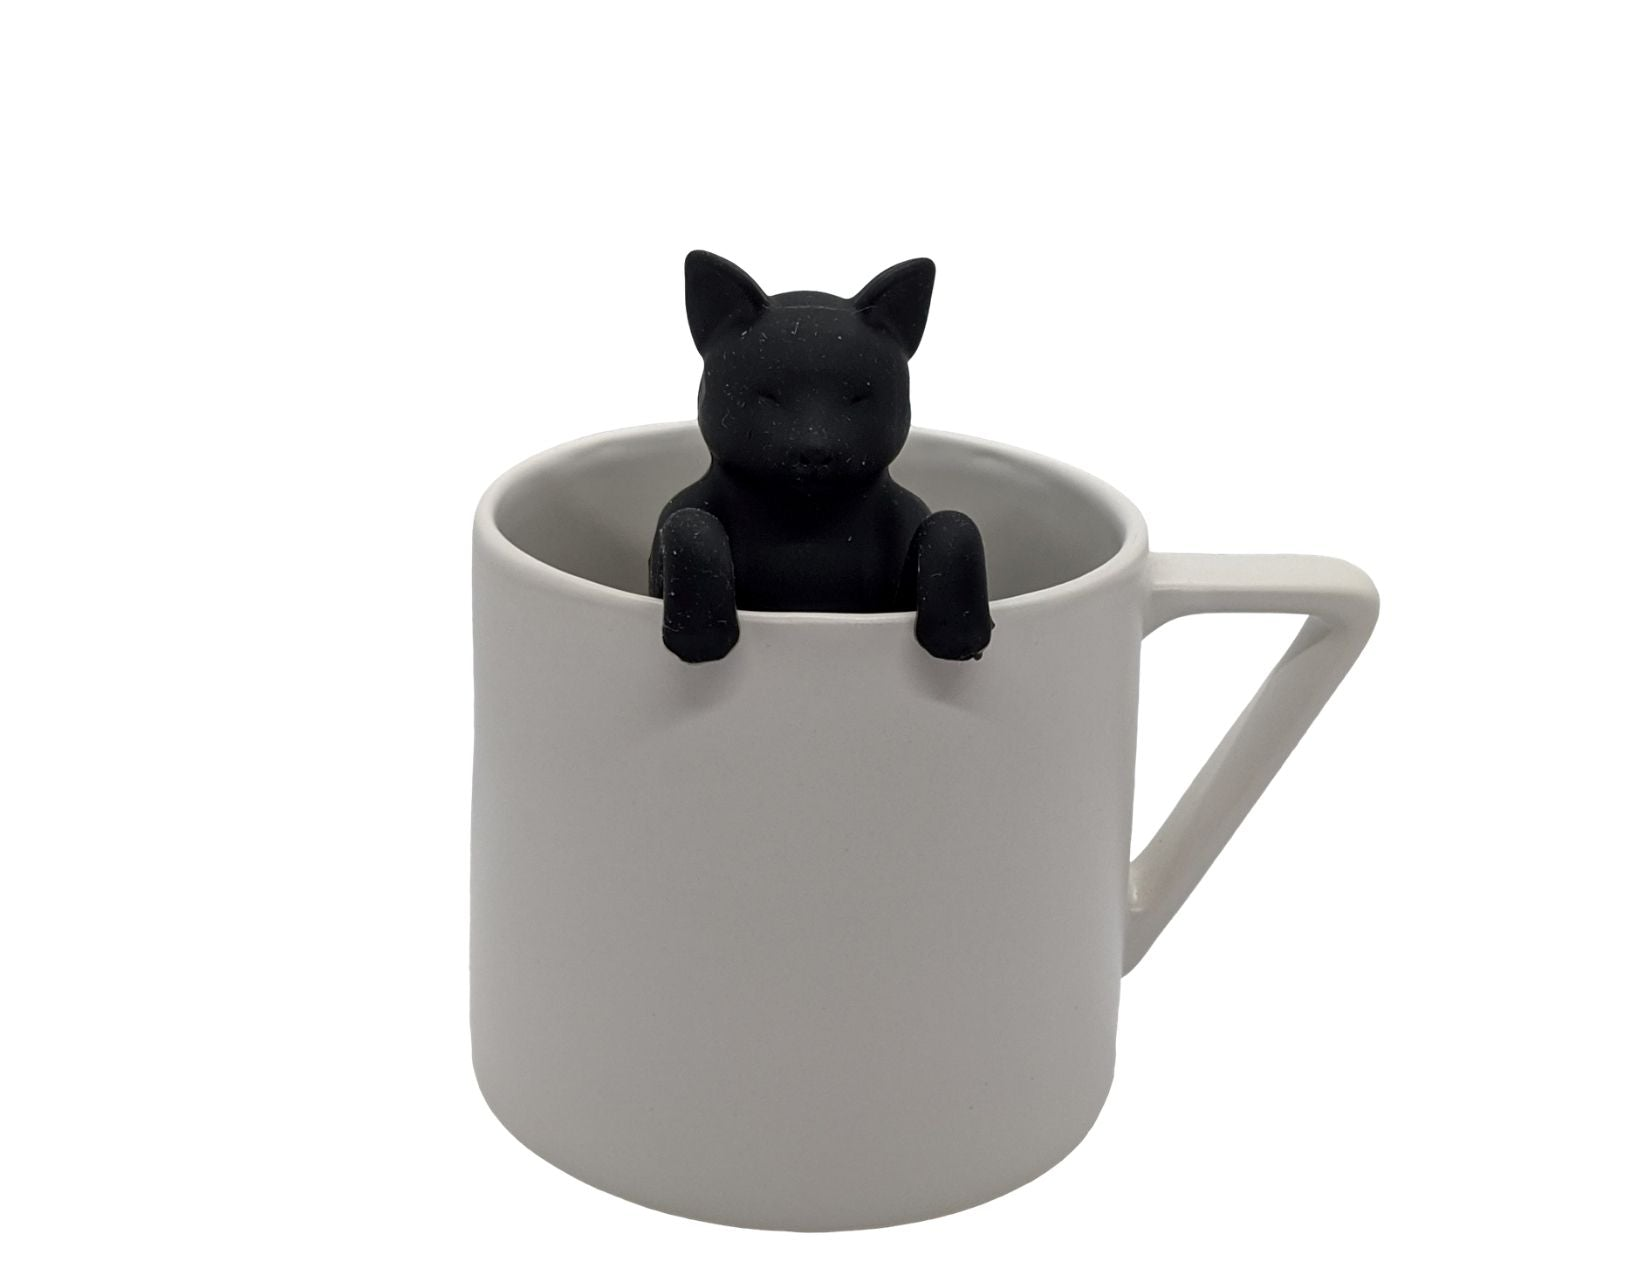 Black Cat Tea Infuser hanging from the side of a mug